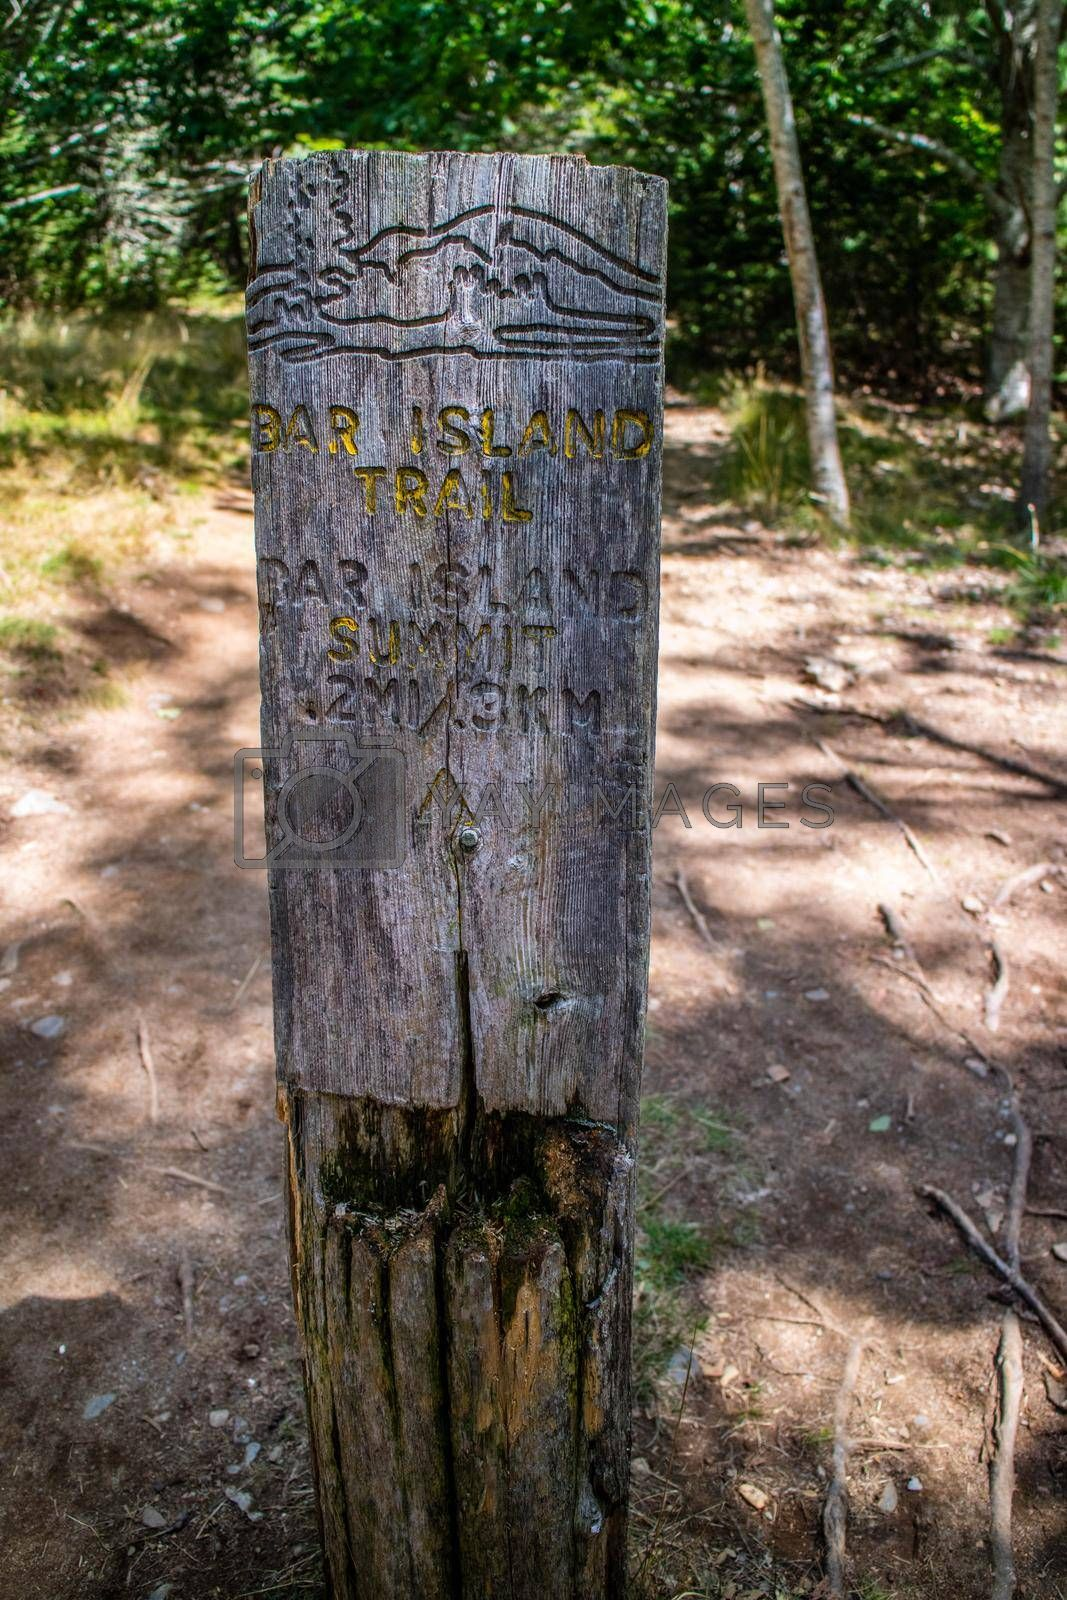 Royalty free image of Bar Harbor, ME, USA - August 19, 2018: The Bar Island Trailhead and Summit by cherialguire